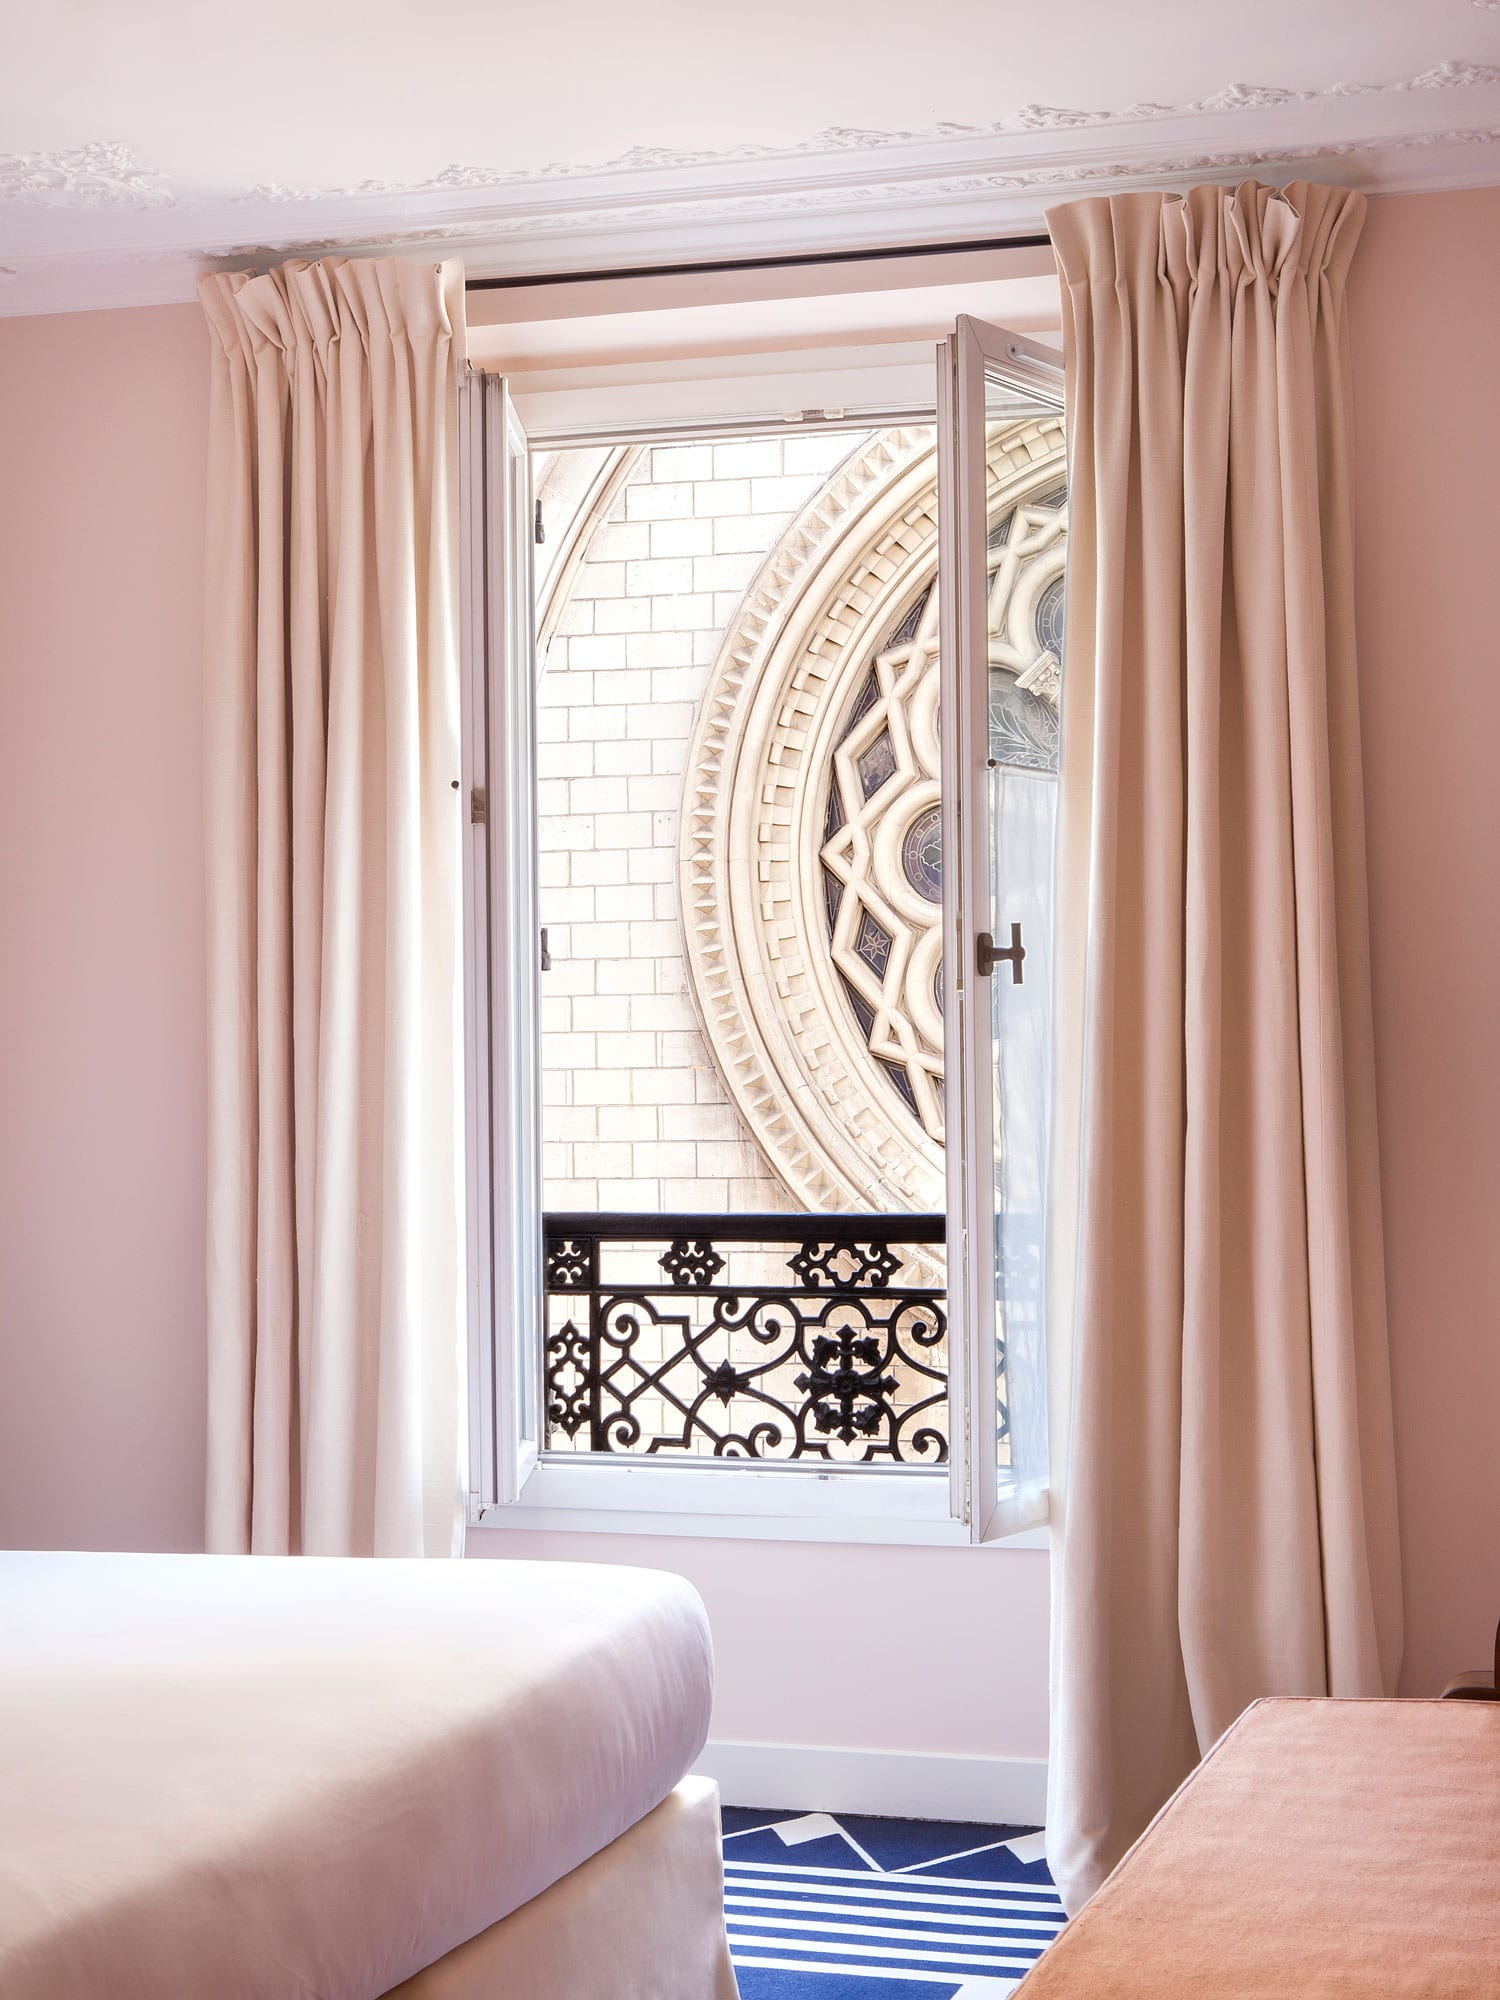 hotel bienvenue paris france designed by chlo negre yellowtrace. Black Bedroom Furniture Sets. Home Design Ideas